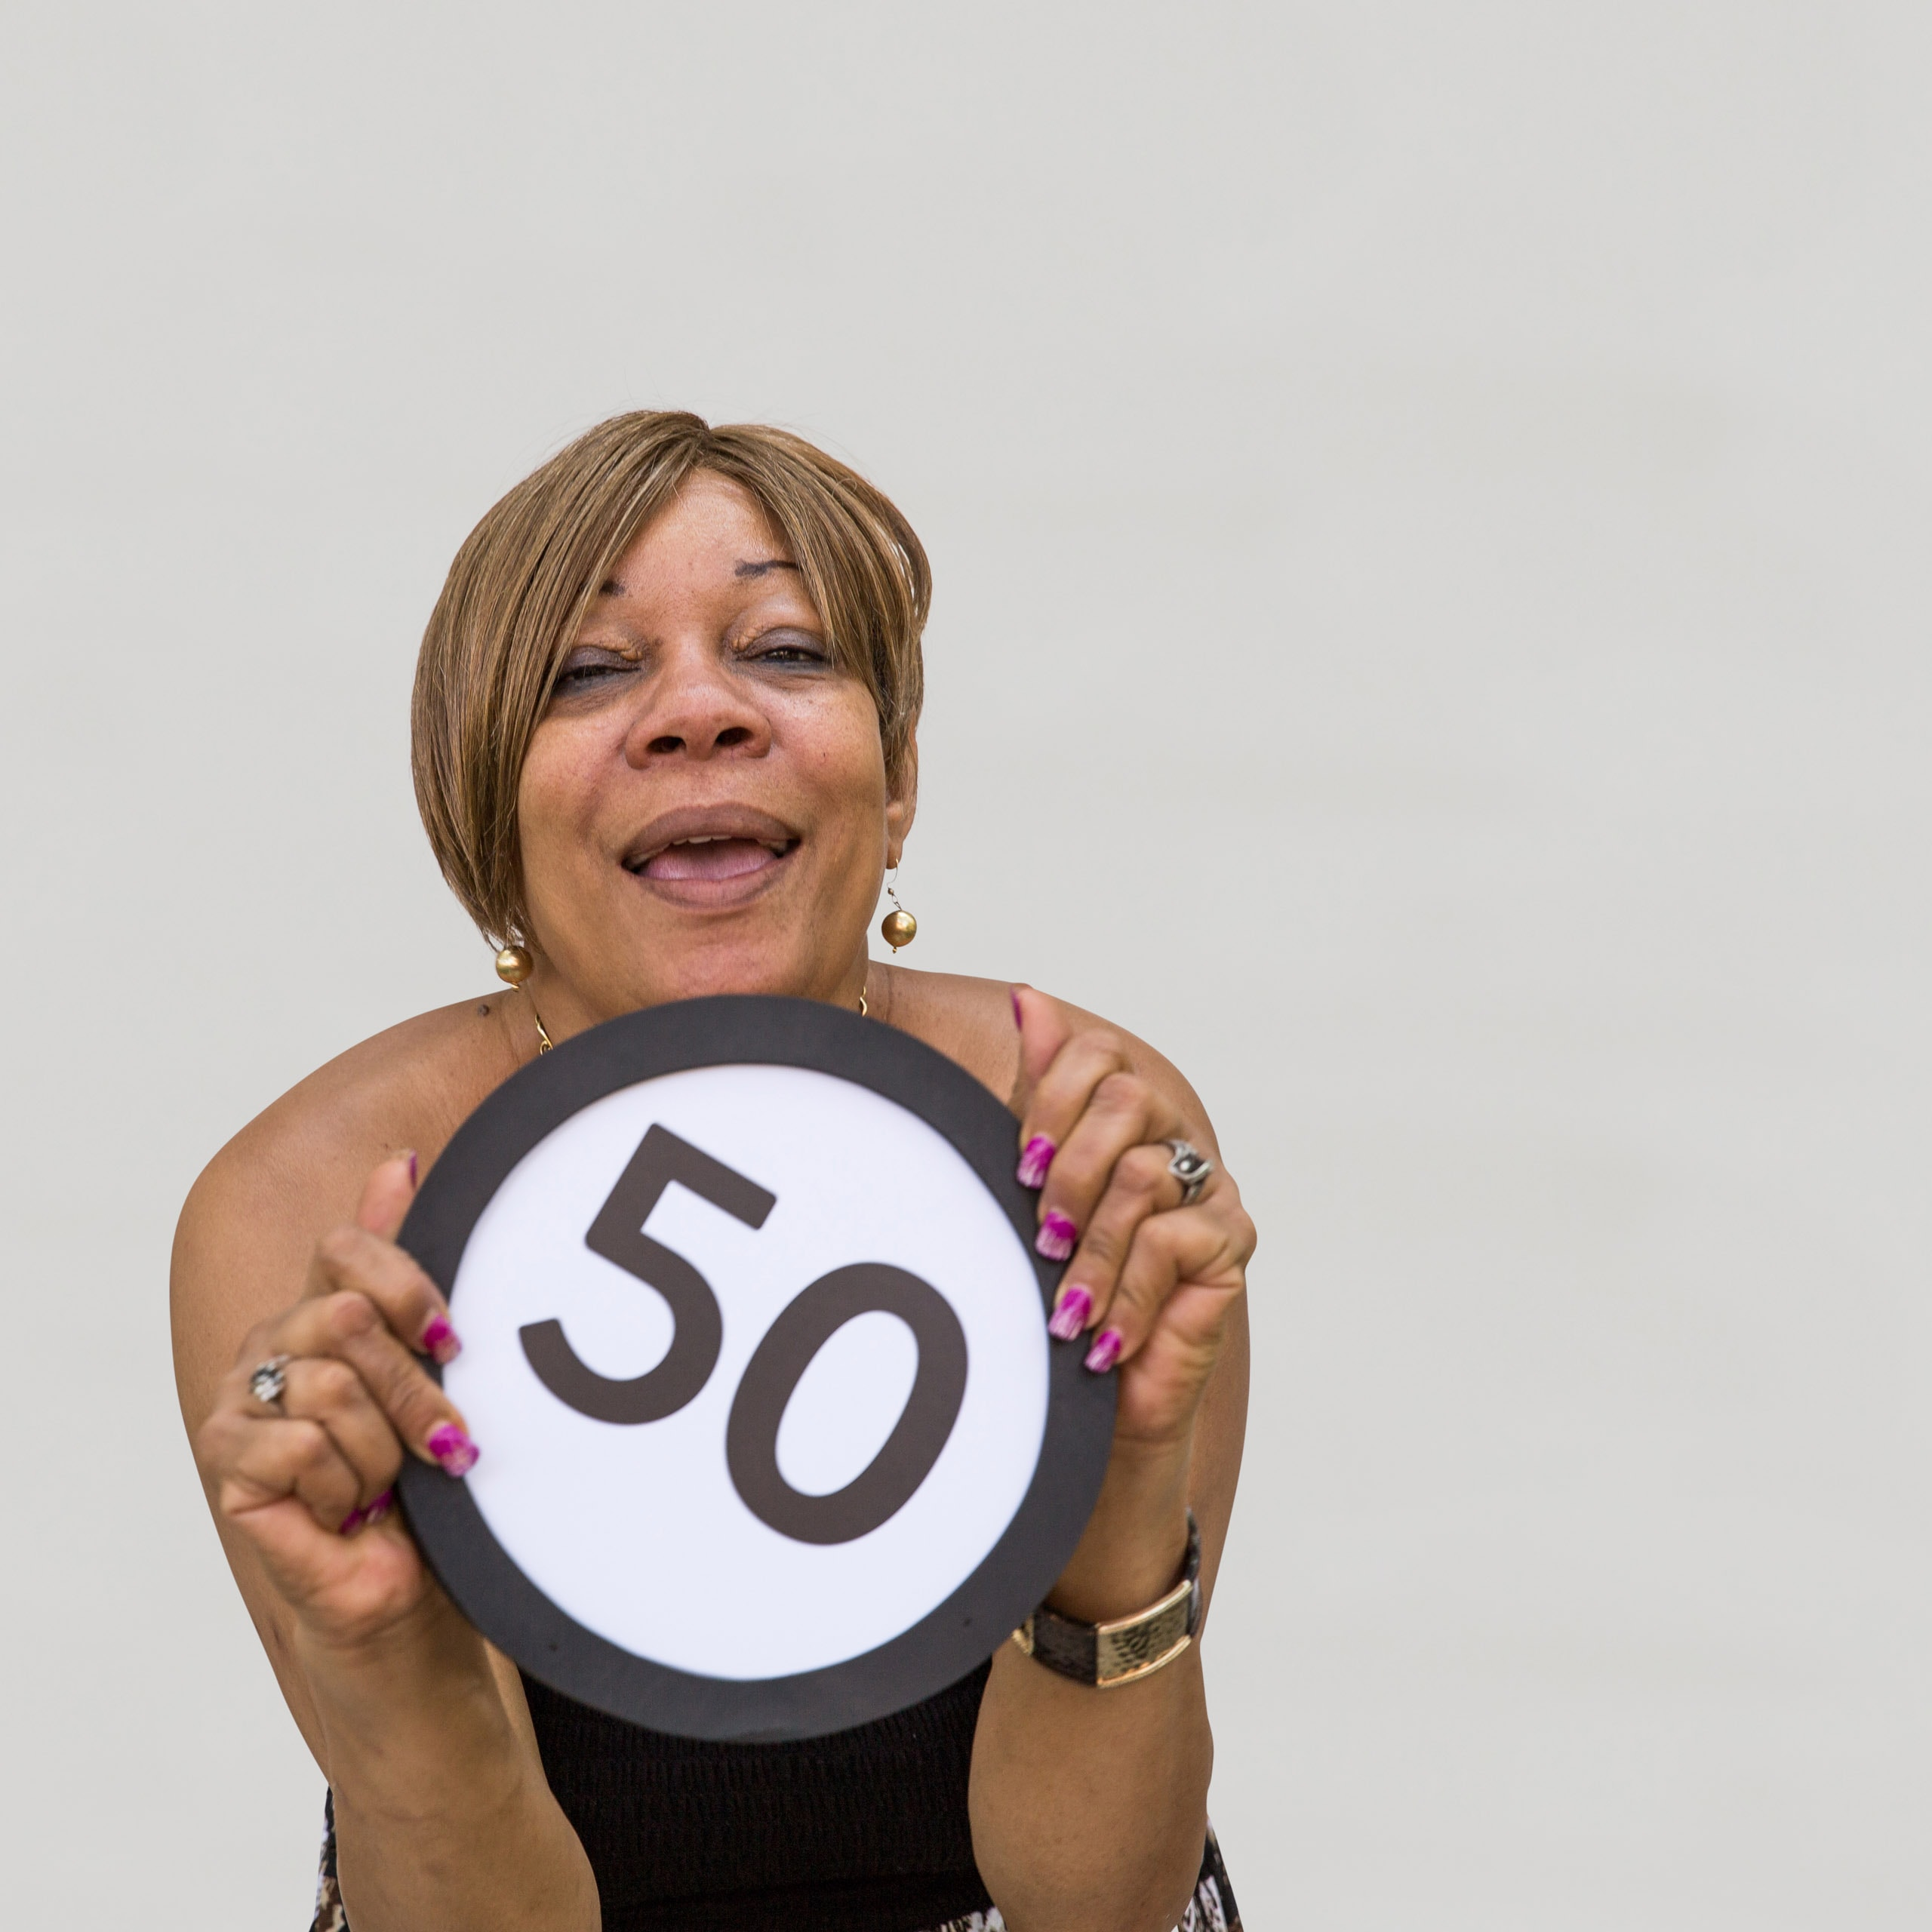 50 year old woman with an open smile laughs and looks into the lens with her eyes softly closing. With magenta painted fingernails she clutches a token in front of her body with the number 50 on it. This digital image is part of the 1 to Infinity portrait photography series by Danny Goldfield.